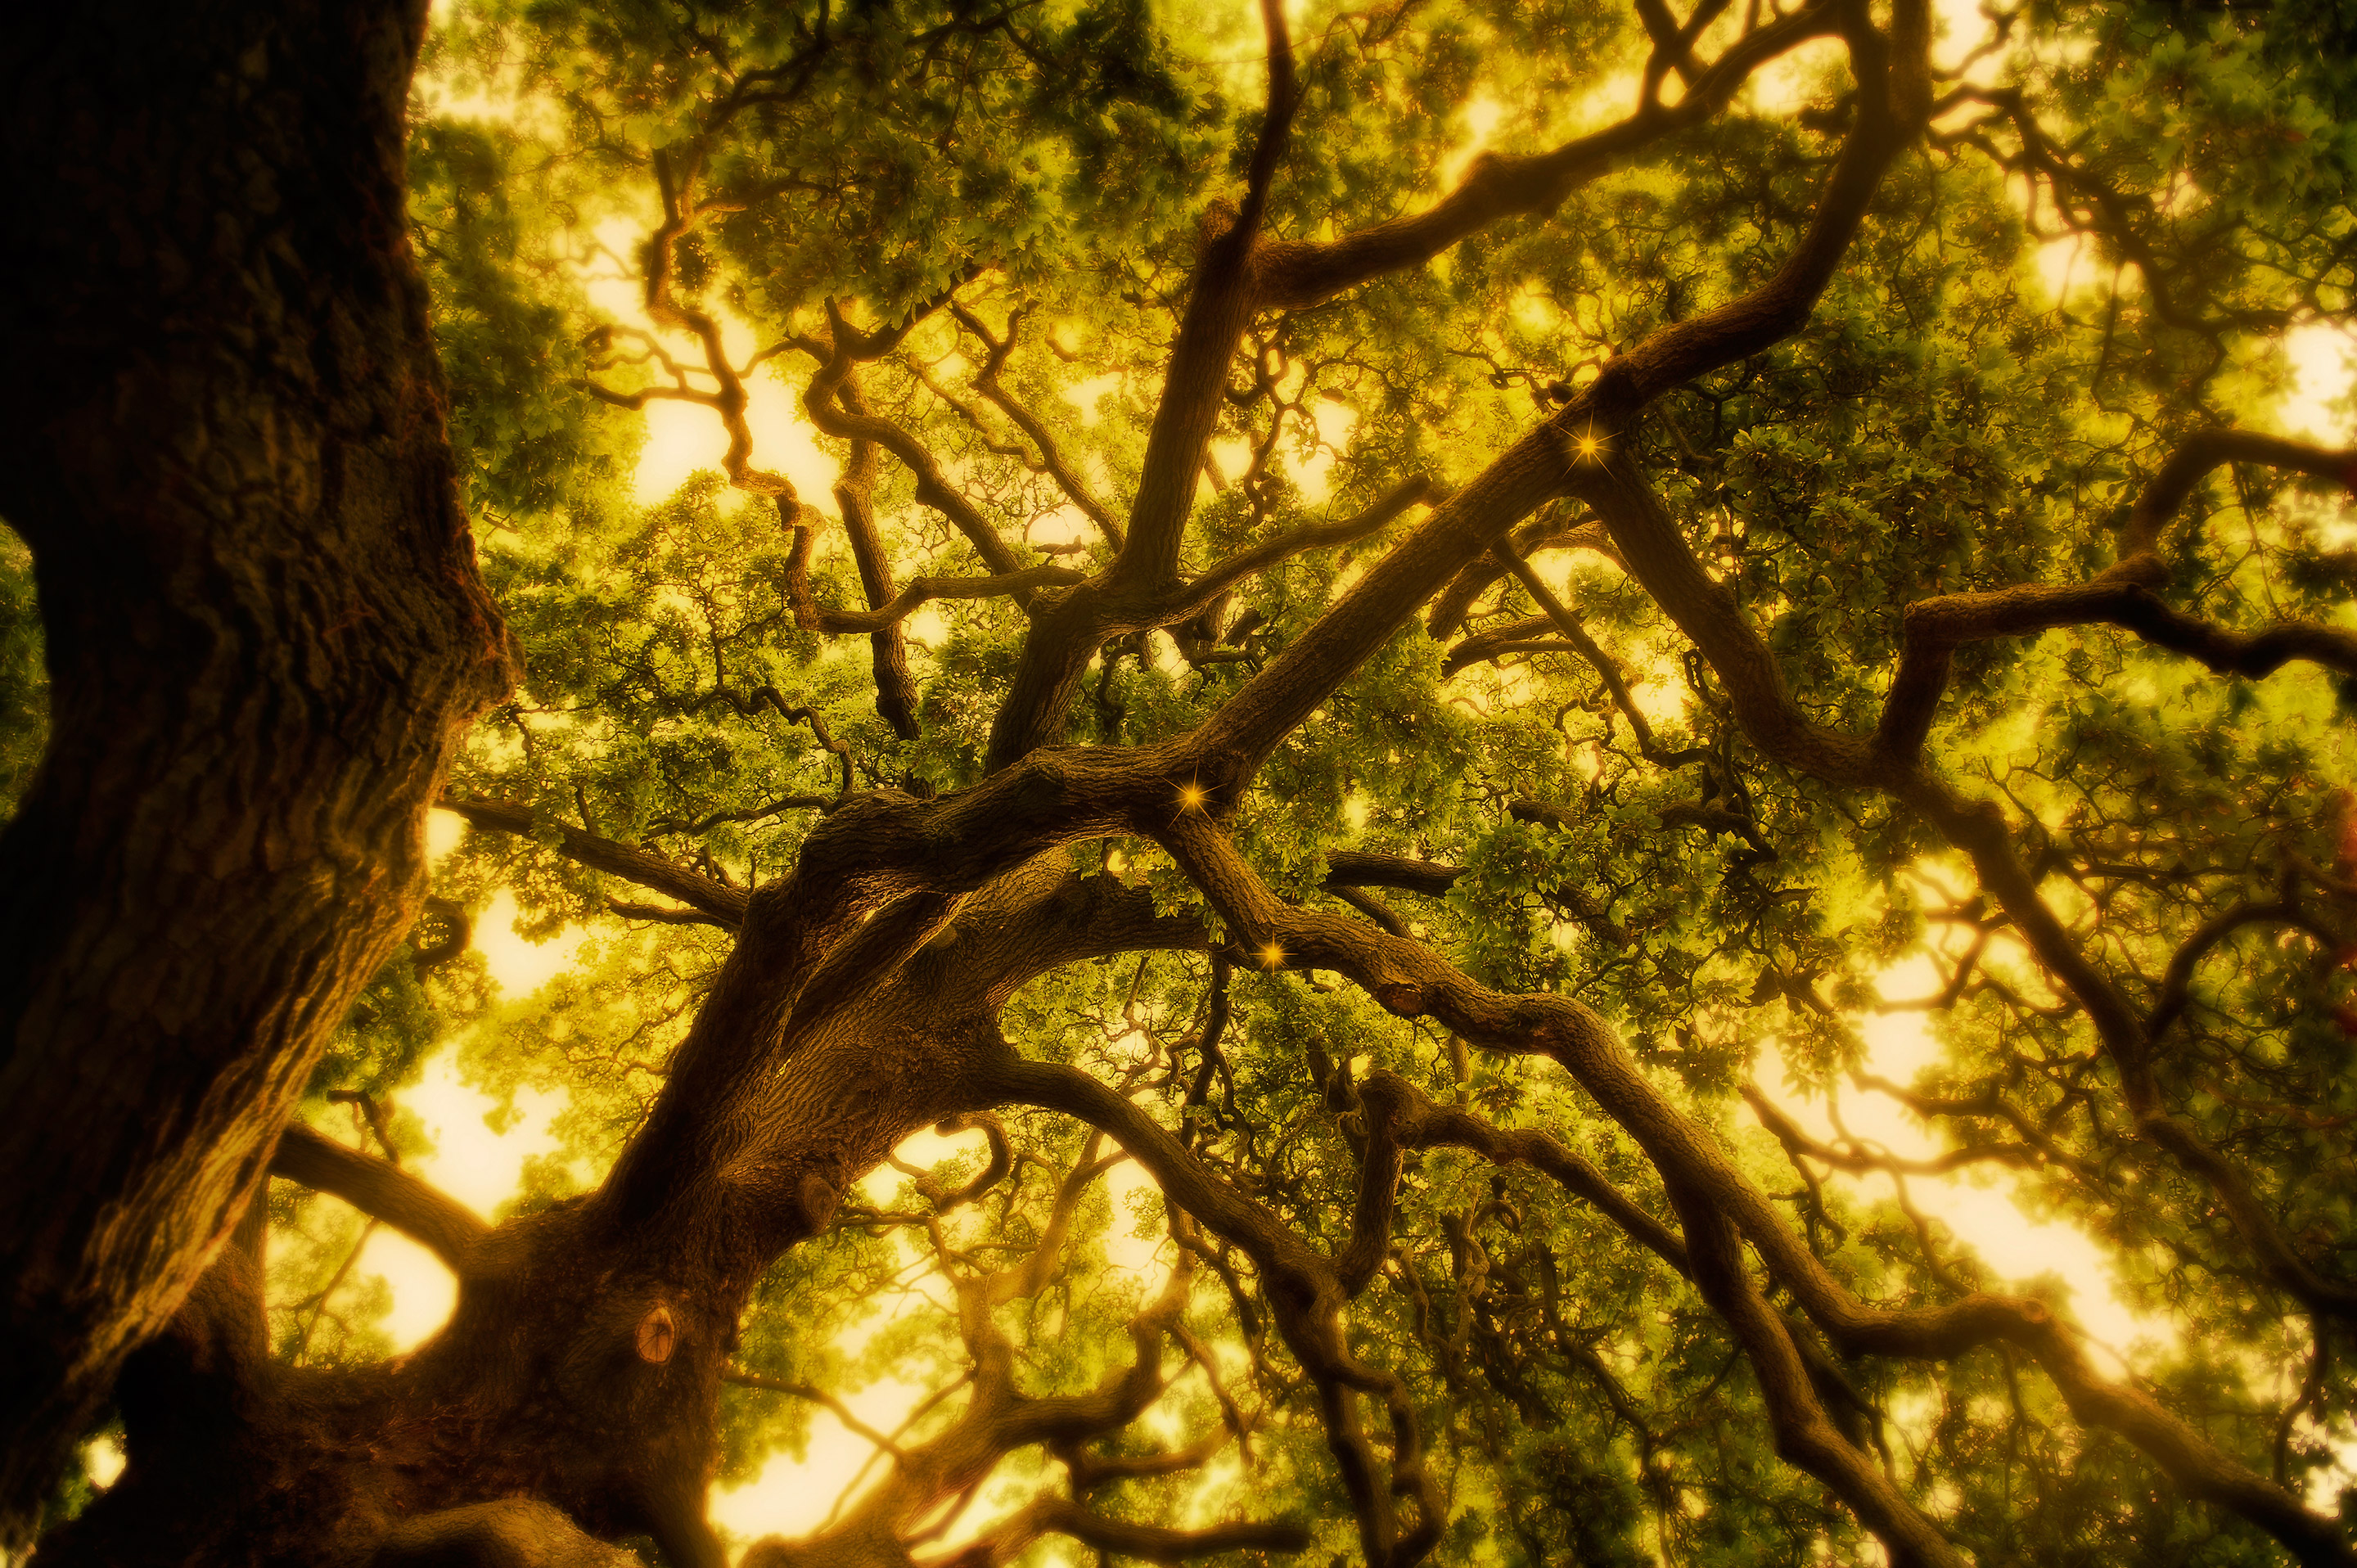 Tracing the path of natural evolution on the Tree of Life.  Image: Daniel Smith/FOX